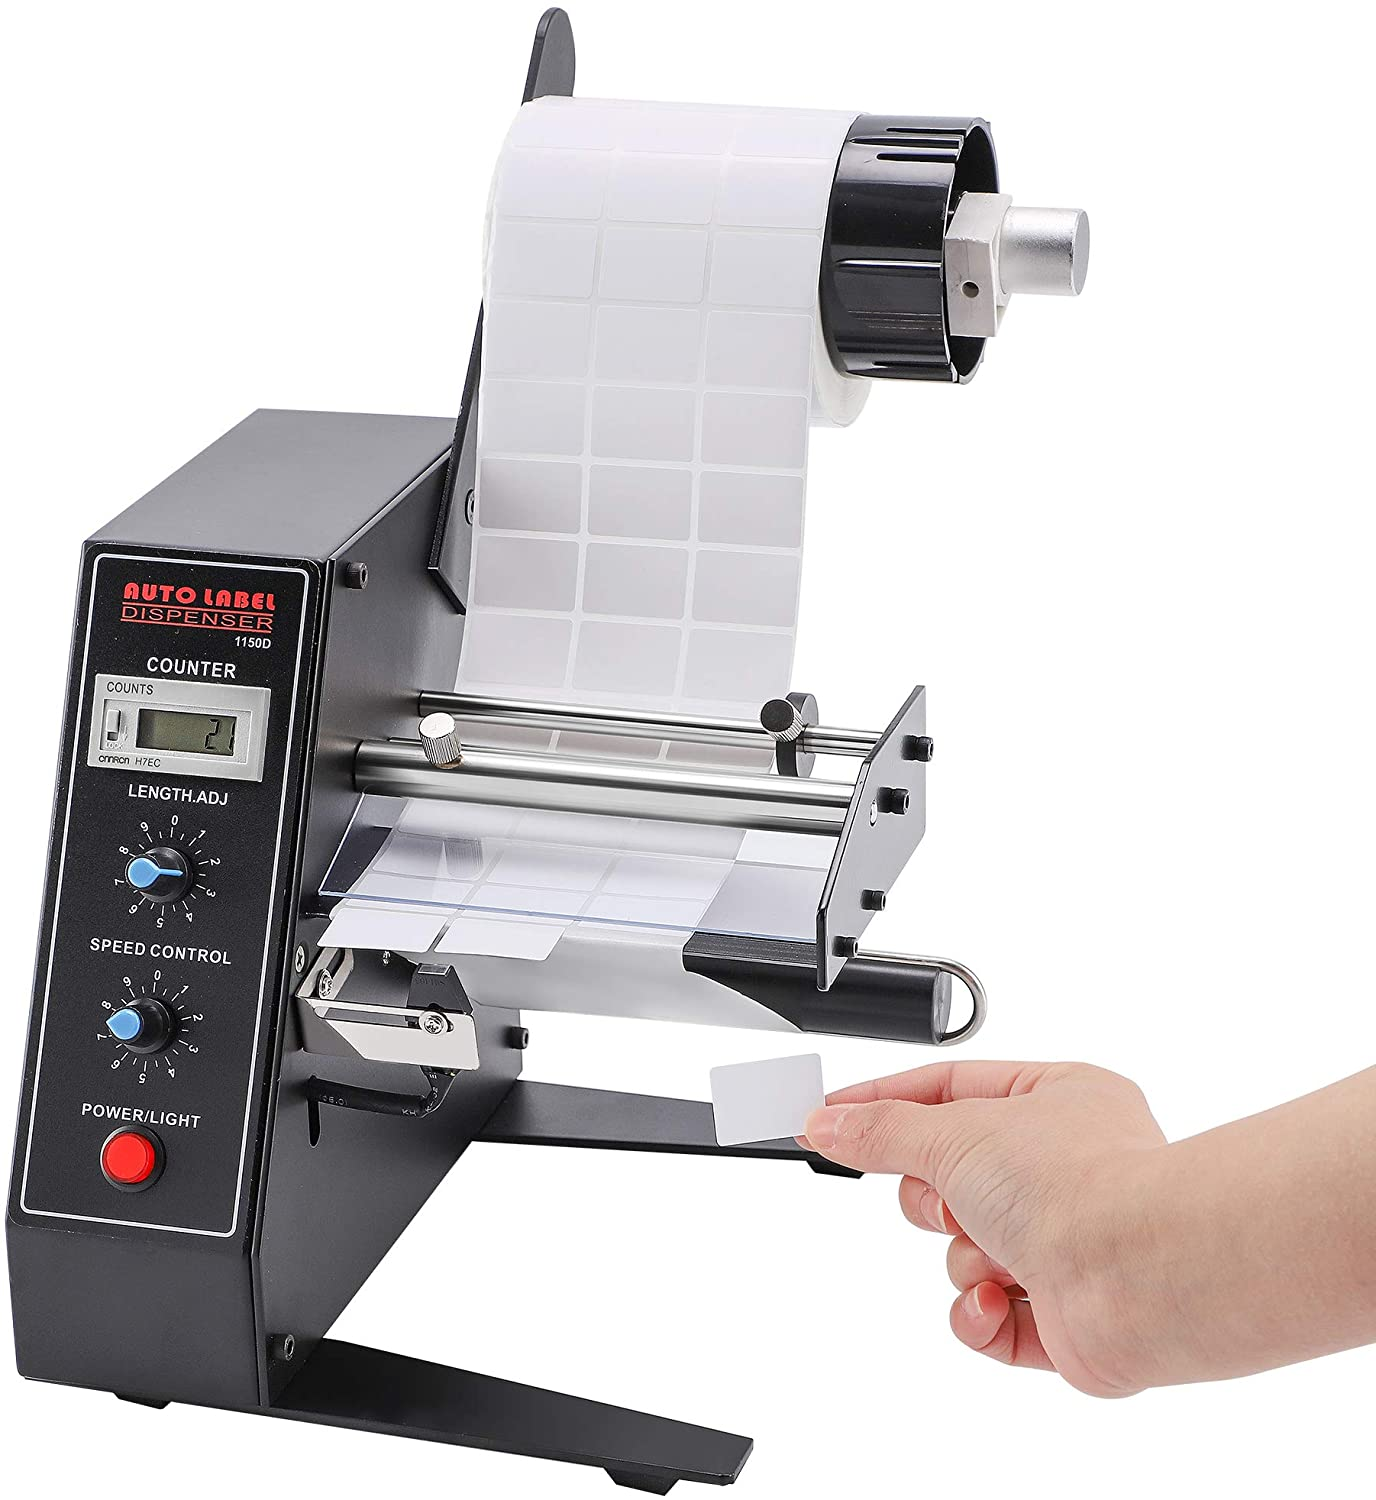 CGOLDENWALL Automatic Label Dispenser Outlet sale New item feature Separator with Photo